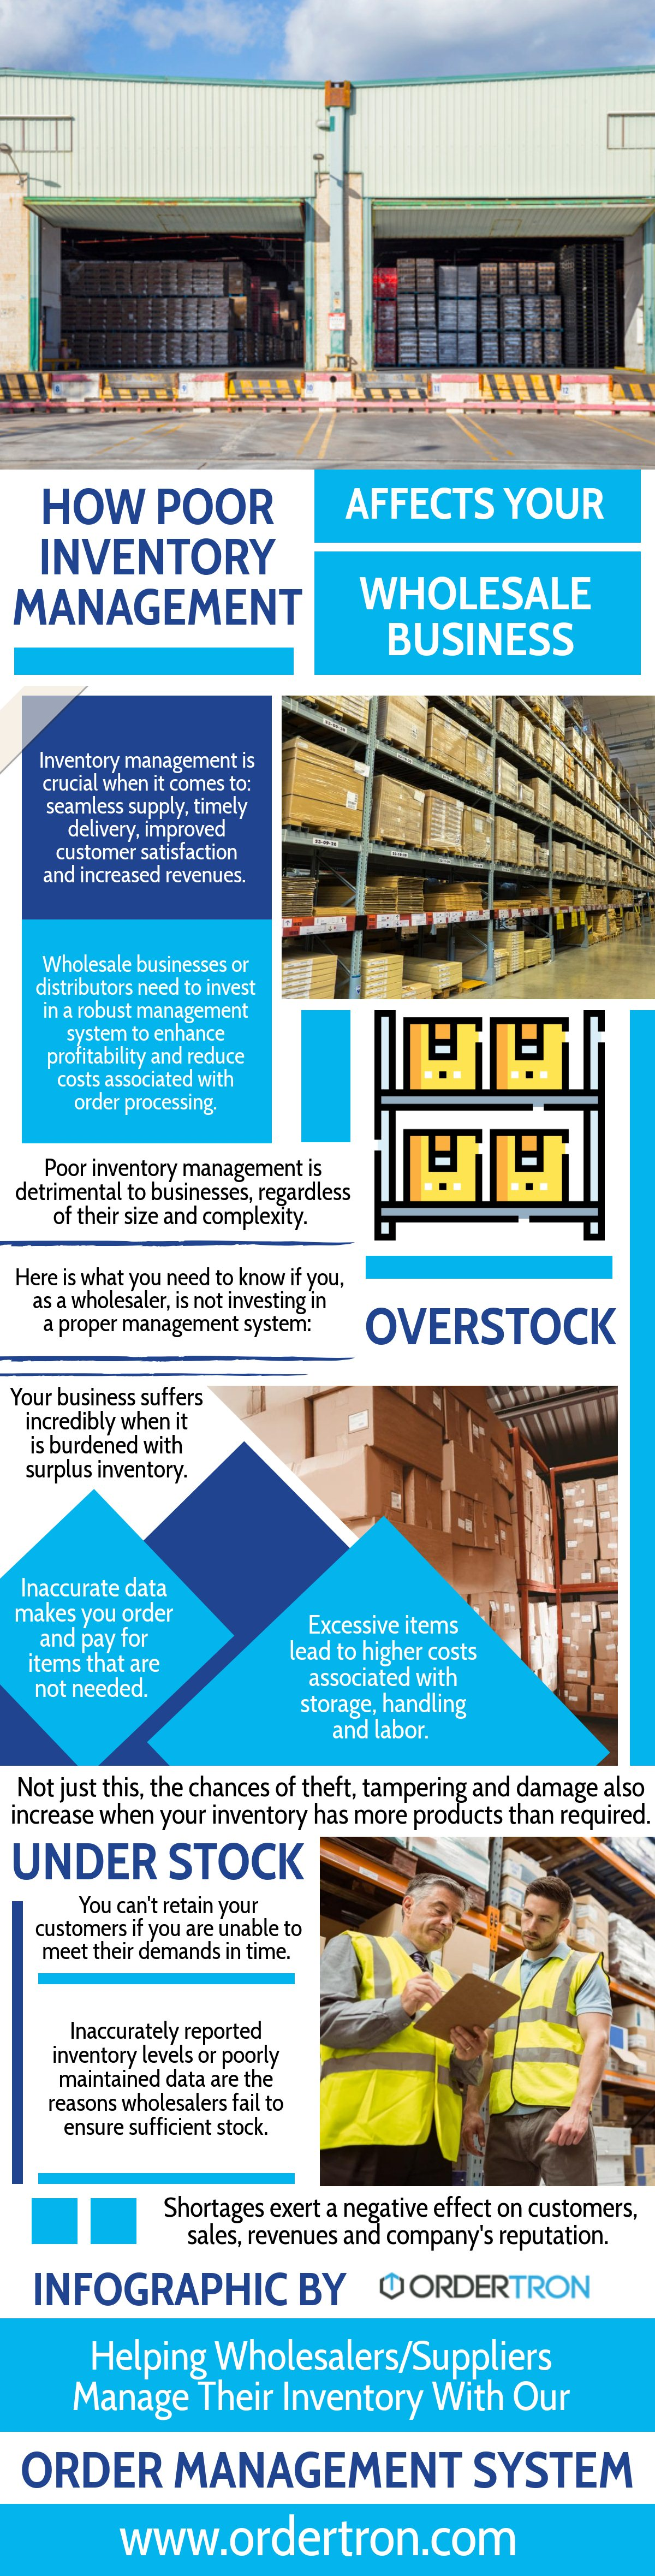 How Poor Inventory Management Affects Your Whole Sale Business